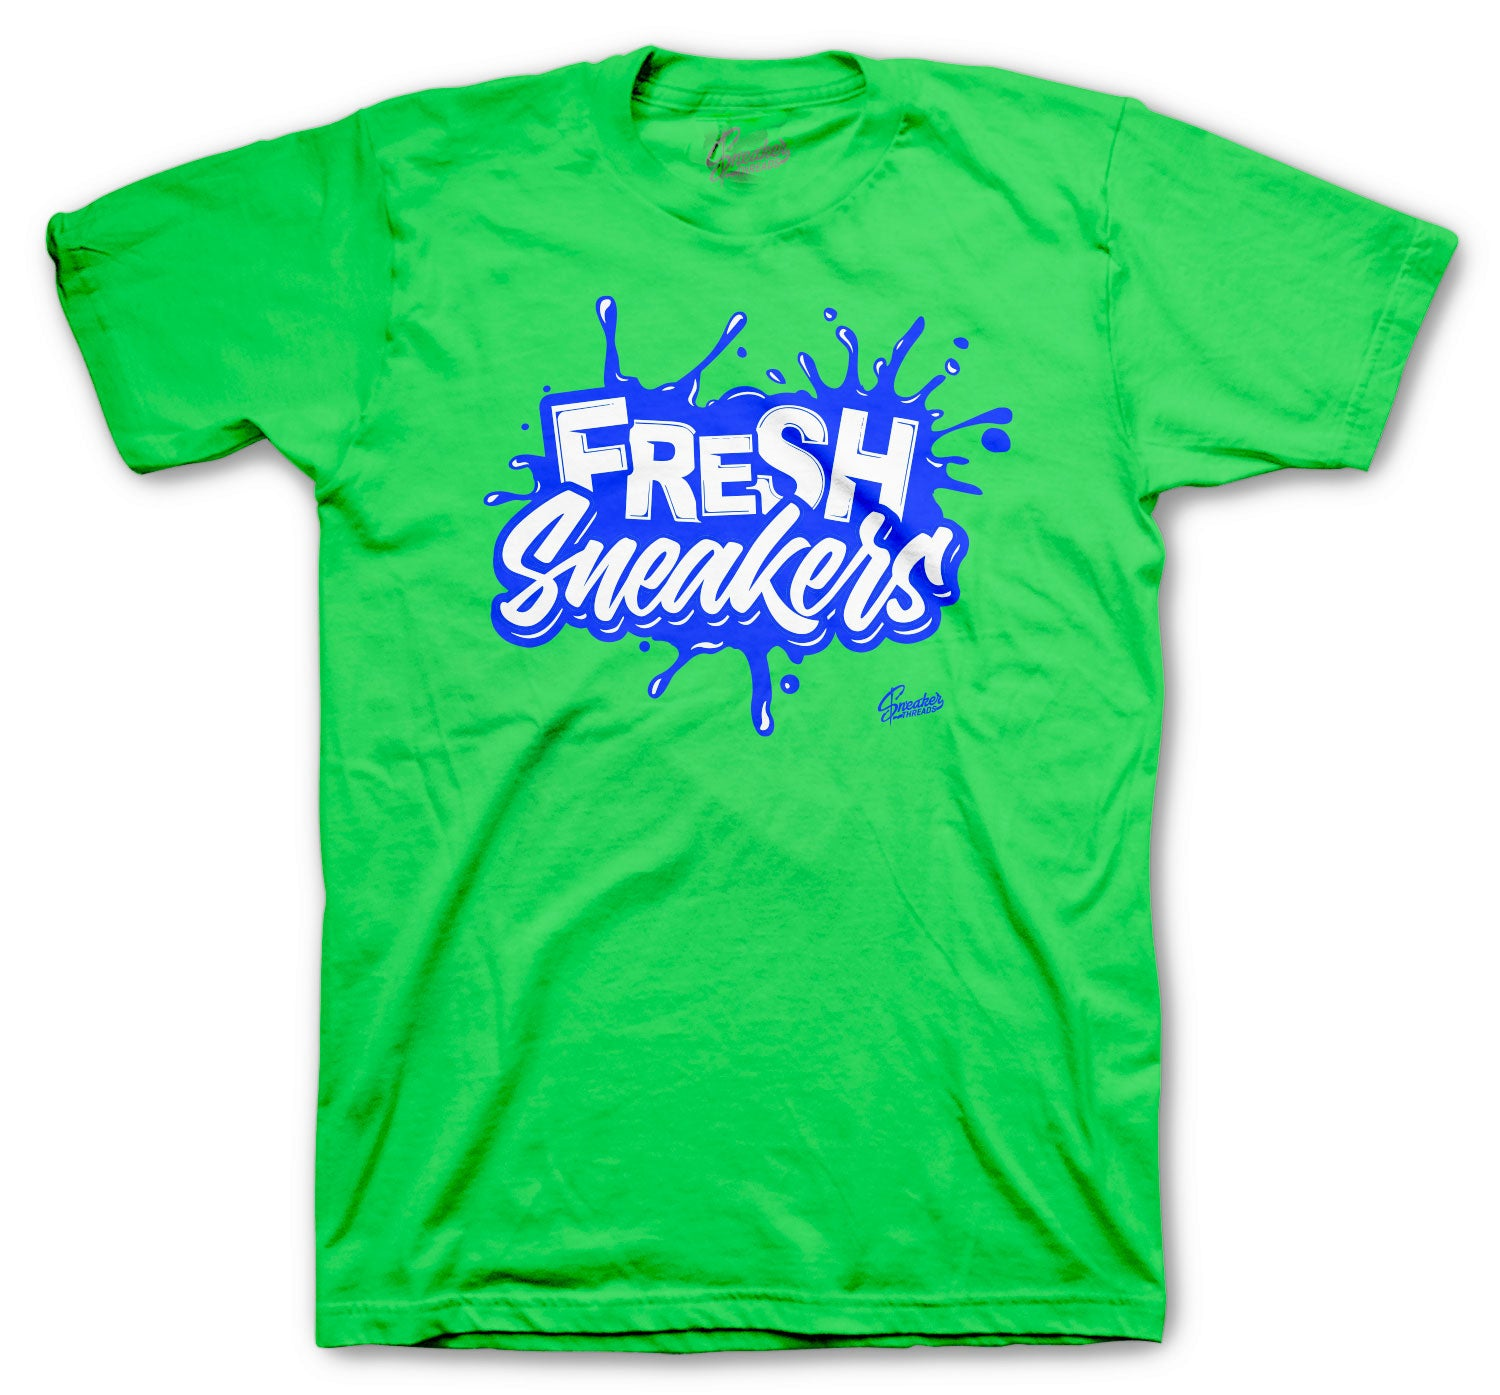 Dunk SB Grateful Fresh Sneakers Shirt - Green